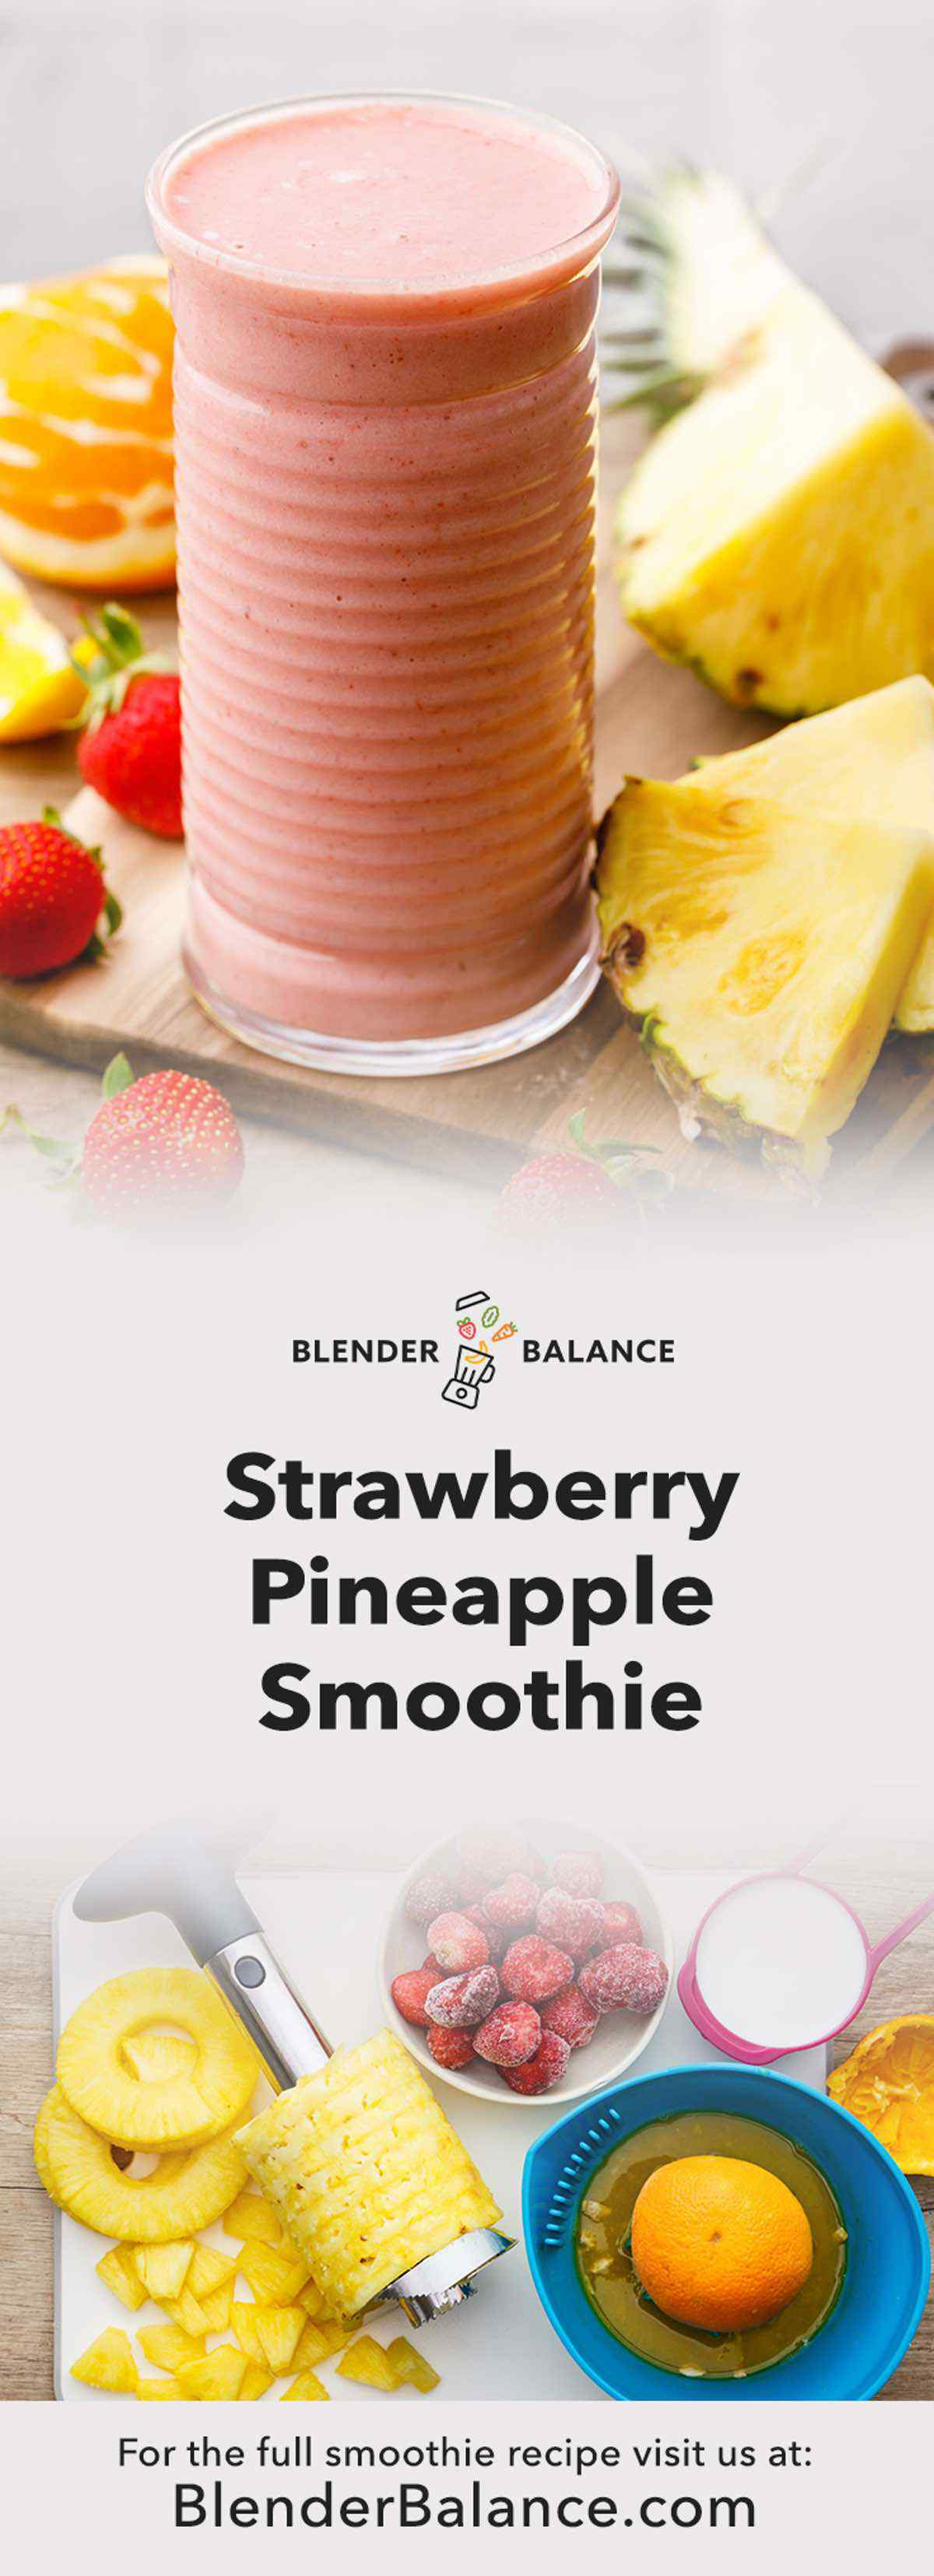 Paleo Strawberry Pineapple Smoothie